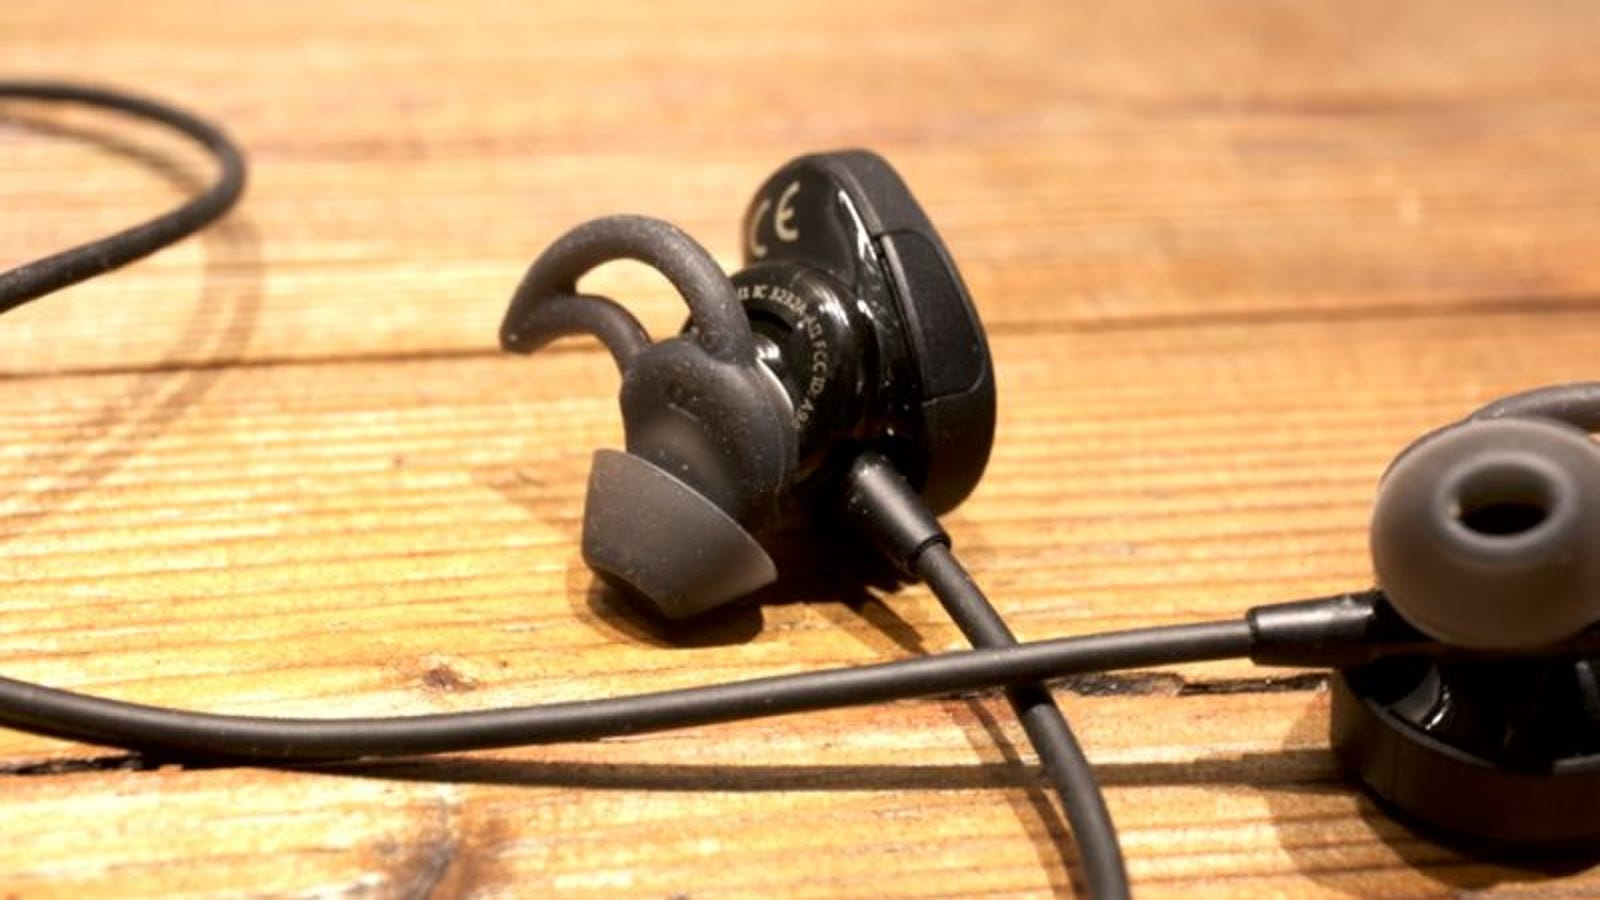 Bose SoundSport Wireless Users Are Reporting Problems With 'Heavy Sweat' [UPDATE]